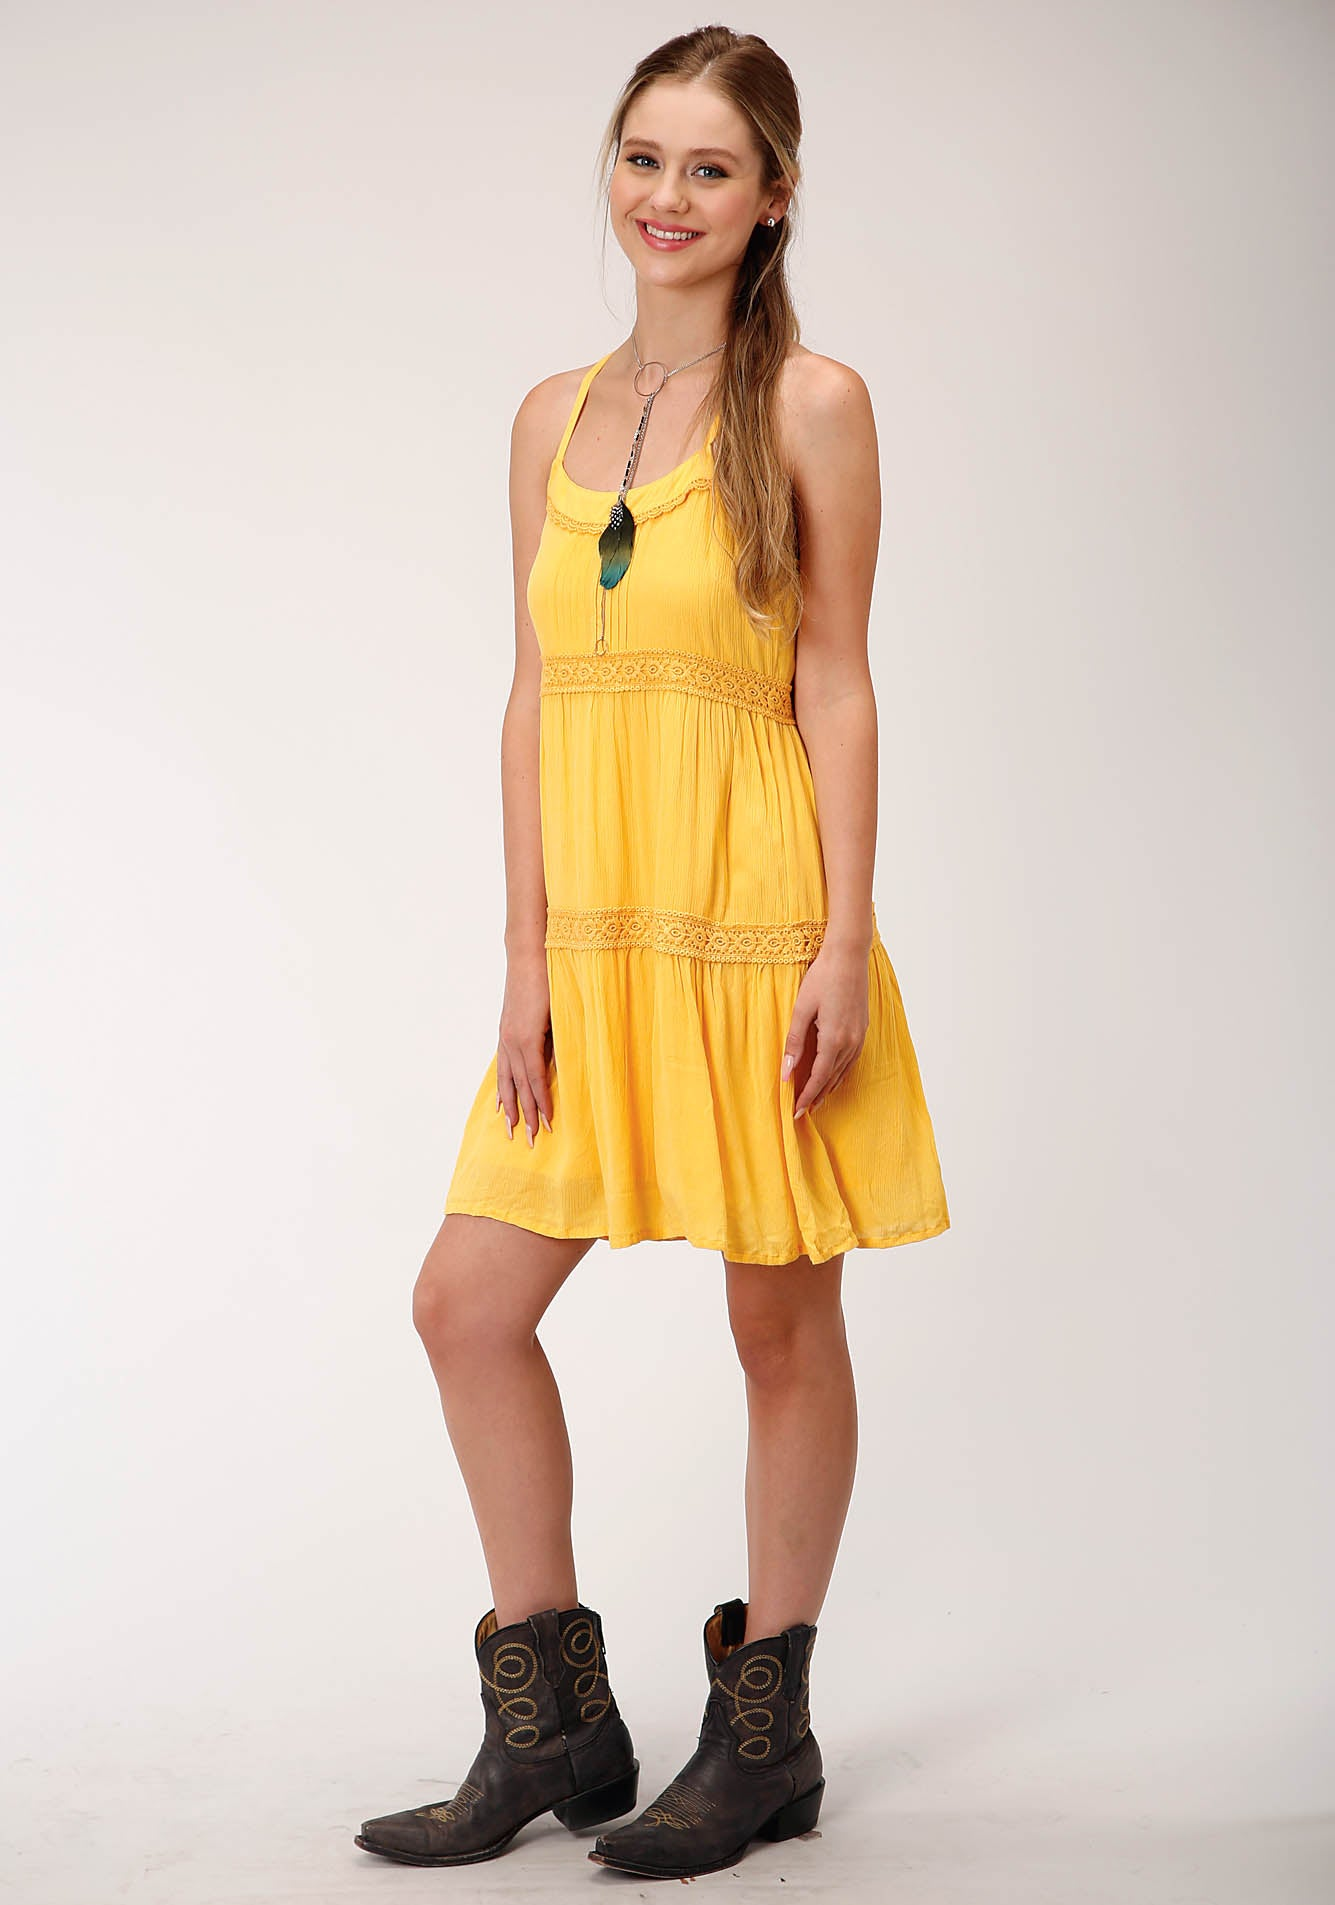 ROPER WOMENS YELLOW 00238 COTTON SLVLS DRESS FIVE STAR COLLECTION- SUMMER I SLEEVELESS DRESS